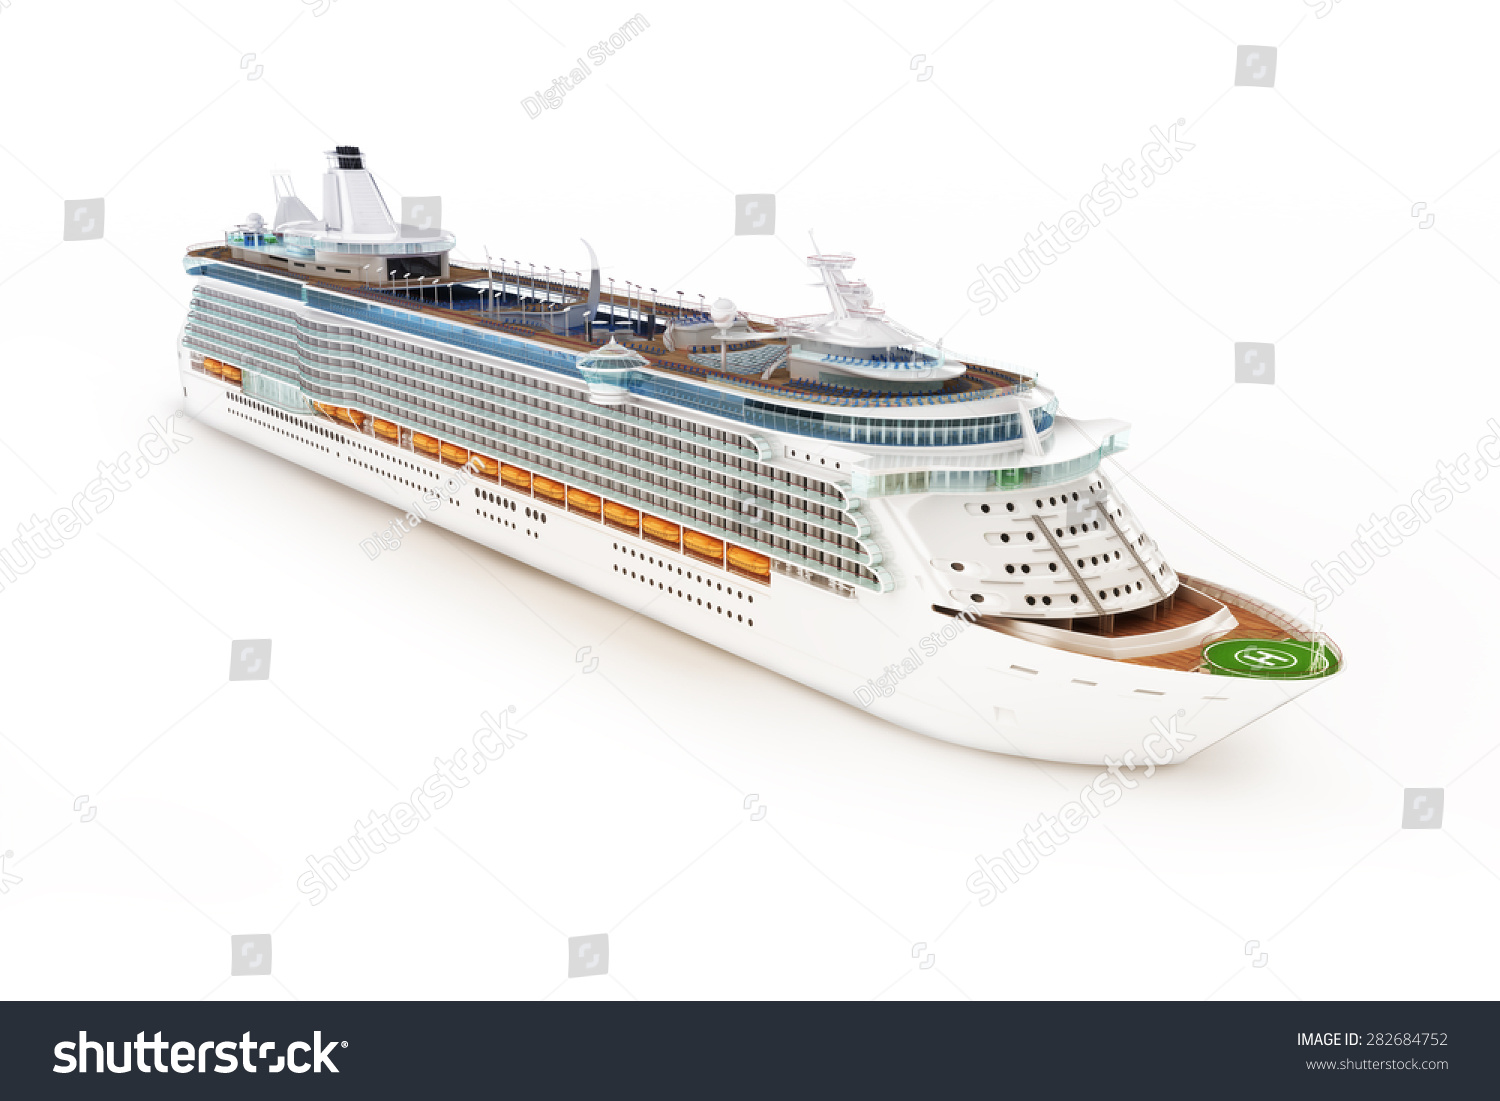 Cruise ship on an isolated white background